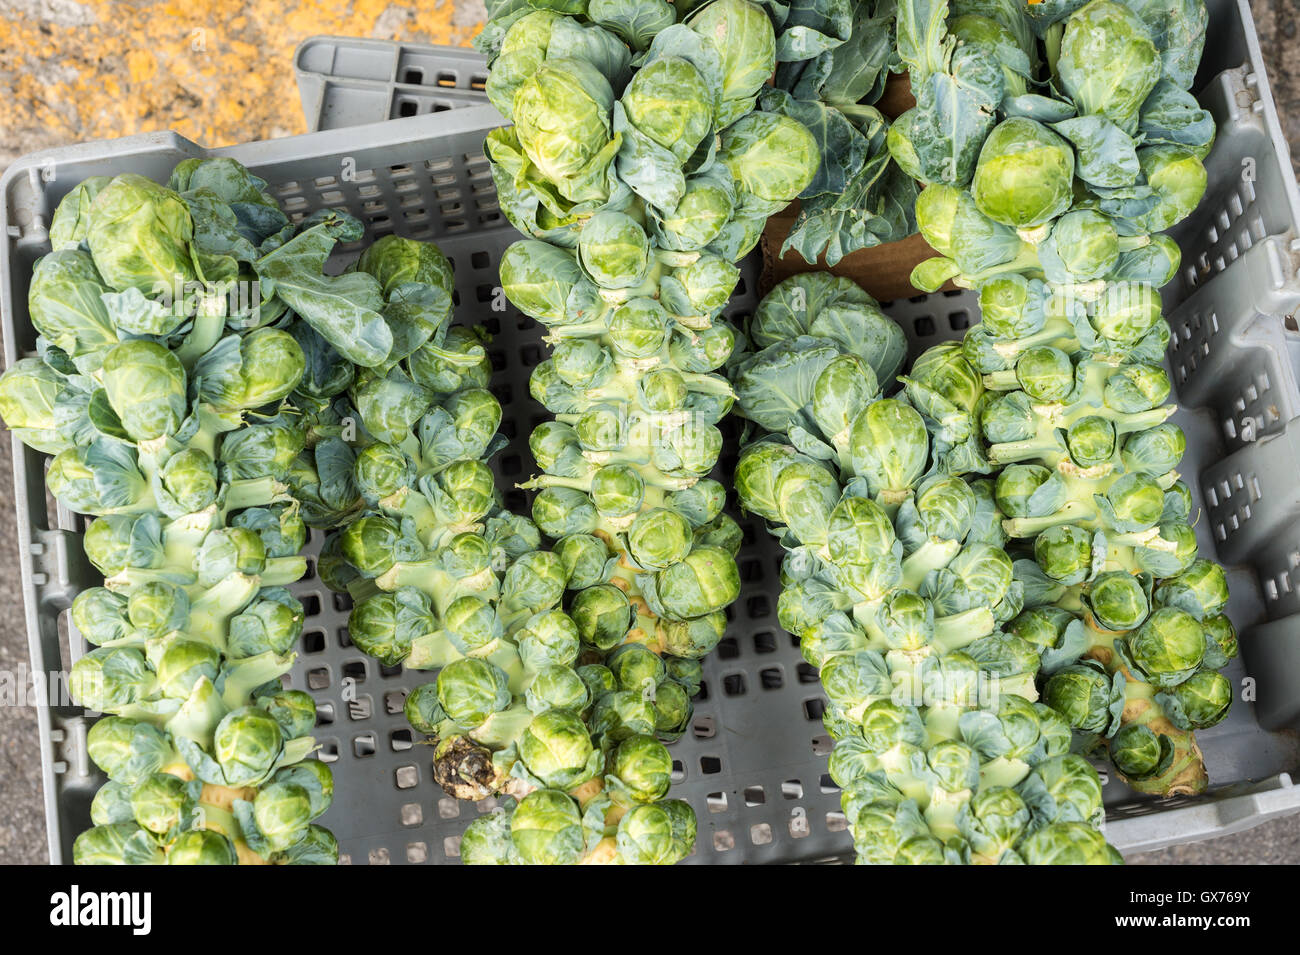 Brussel sprout stalks at the local market - Stock Image